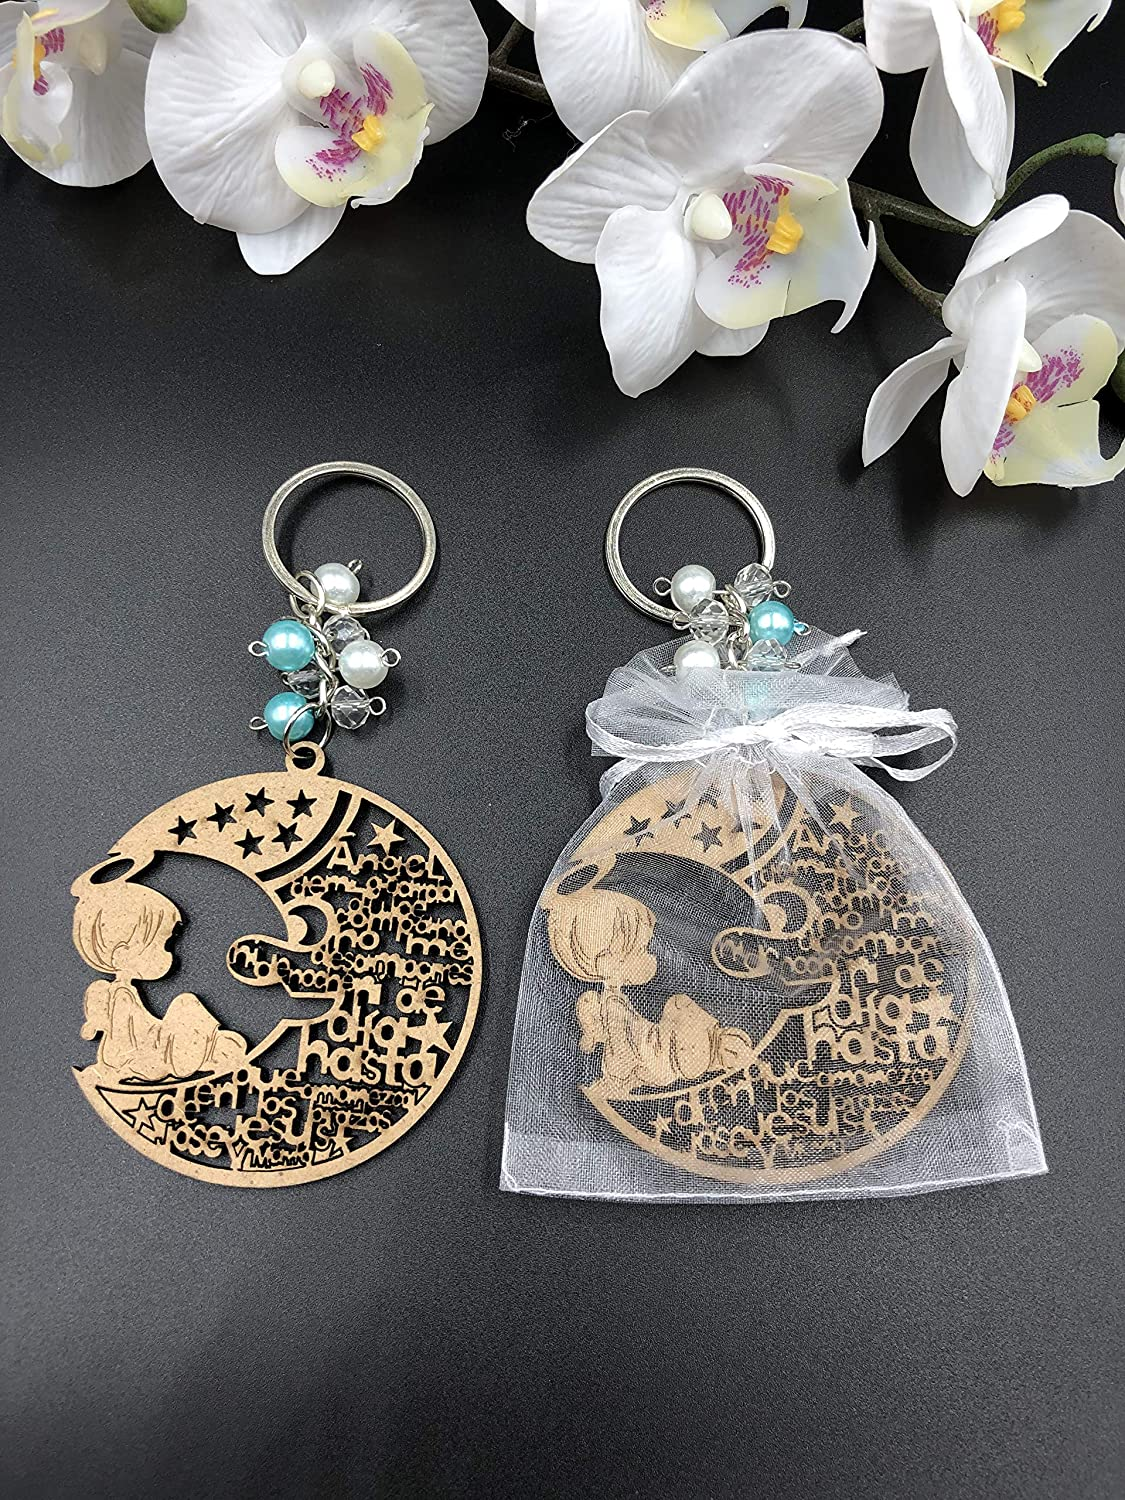 12Pcs Baptism Boy Blue Wood Angel Moon Design Keychain baptism Favors with Angels for Boy Recuerdos de Bautizo With Orgazna Bags